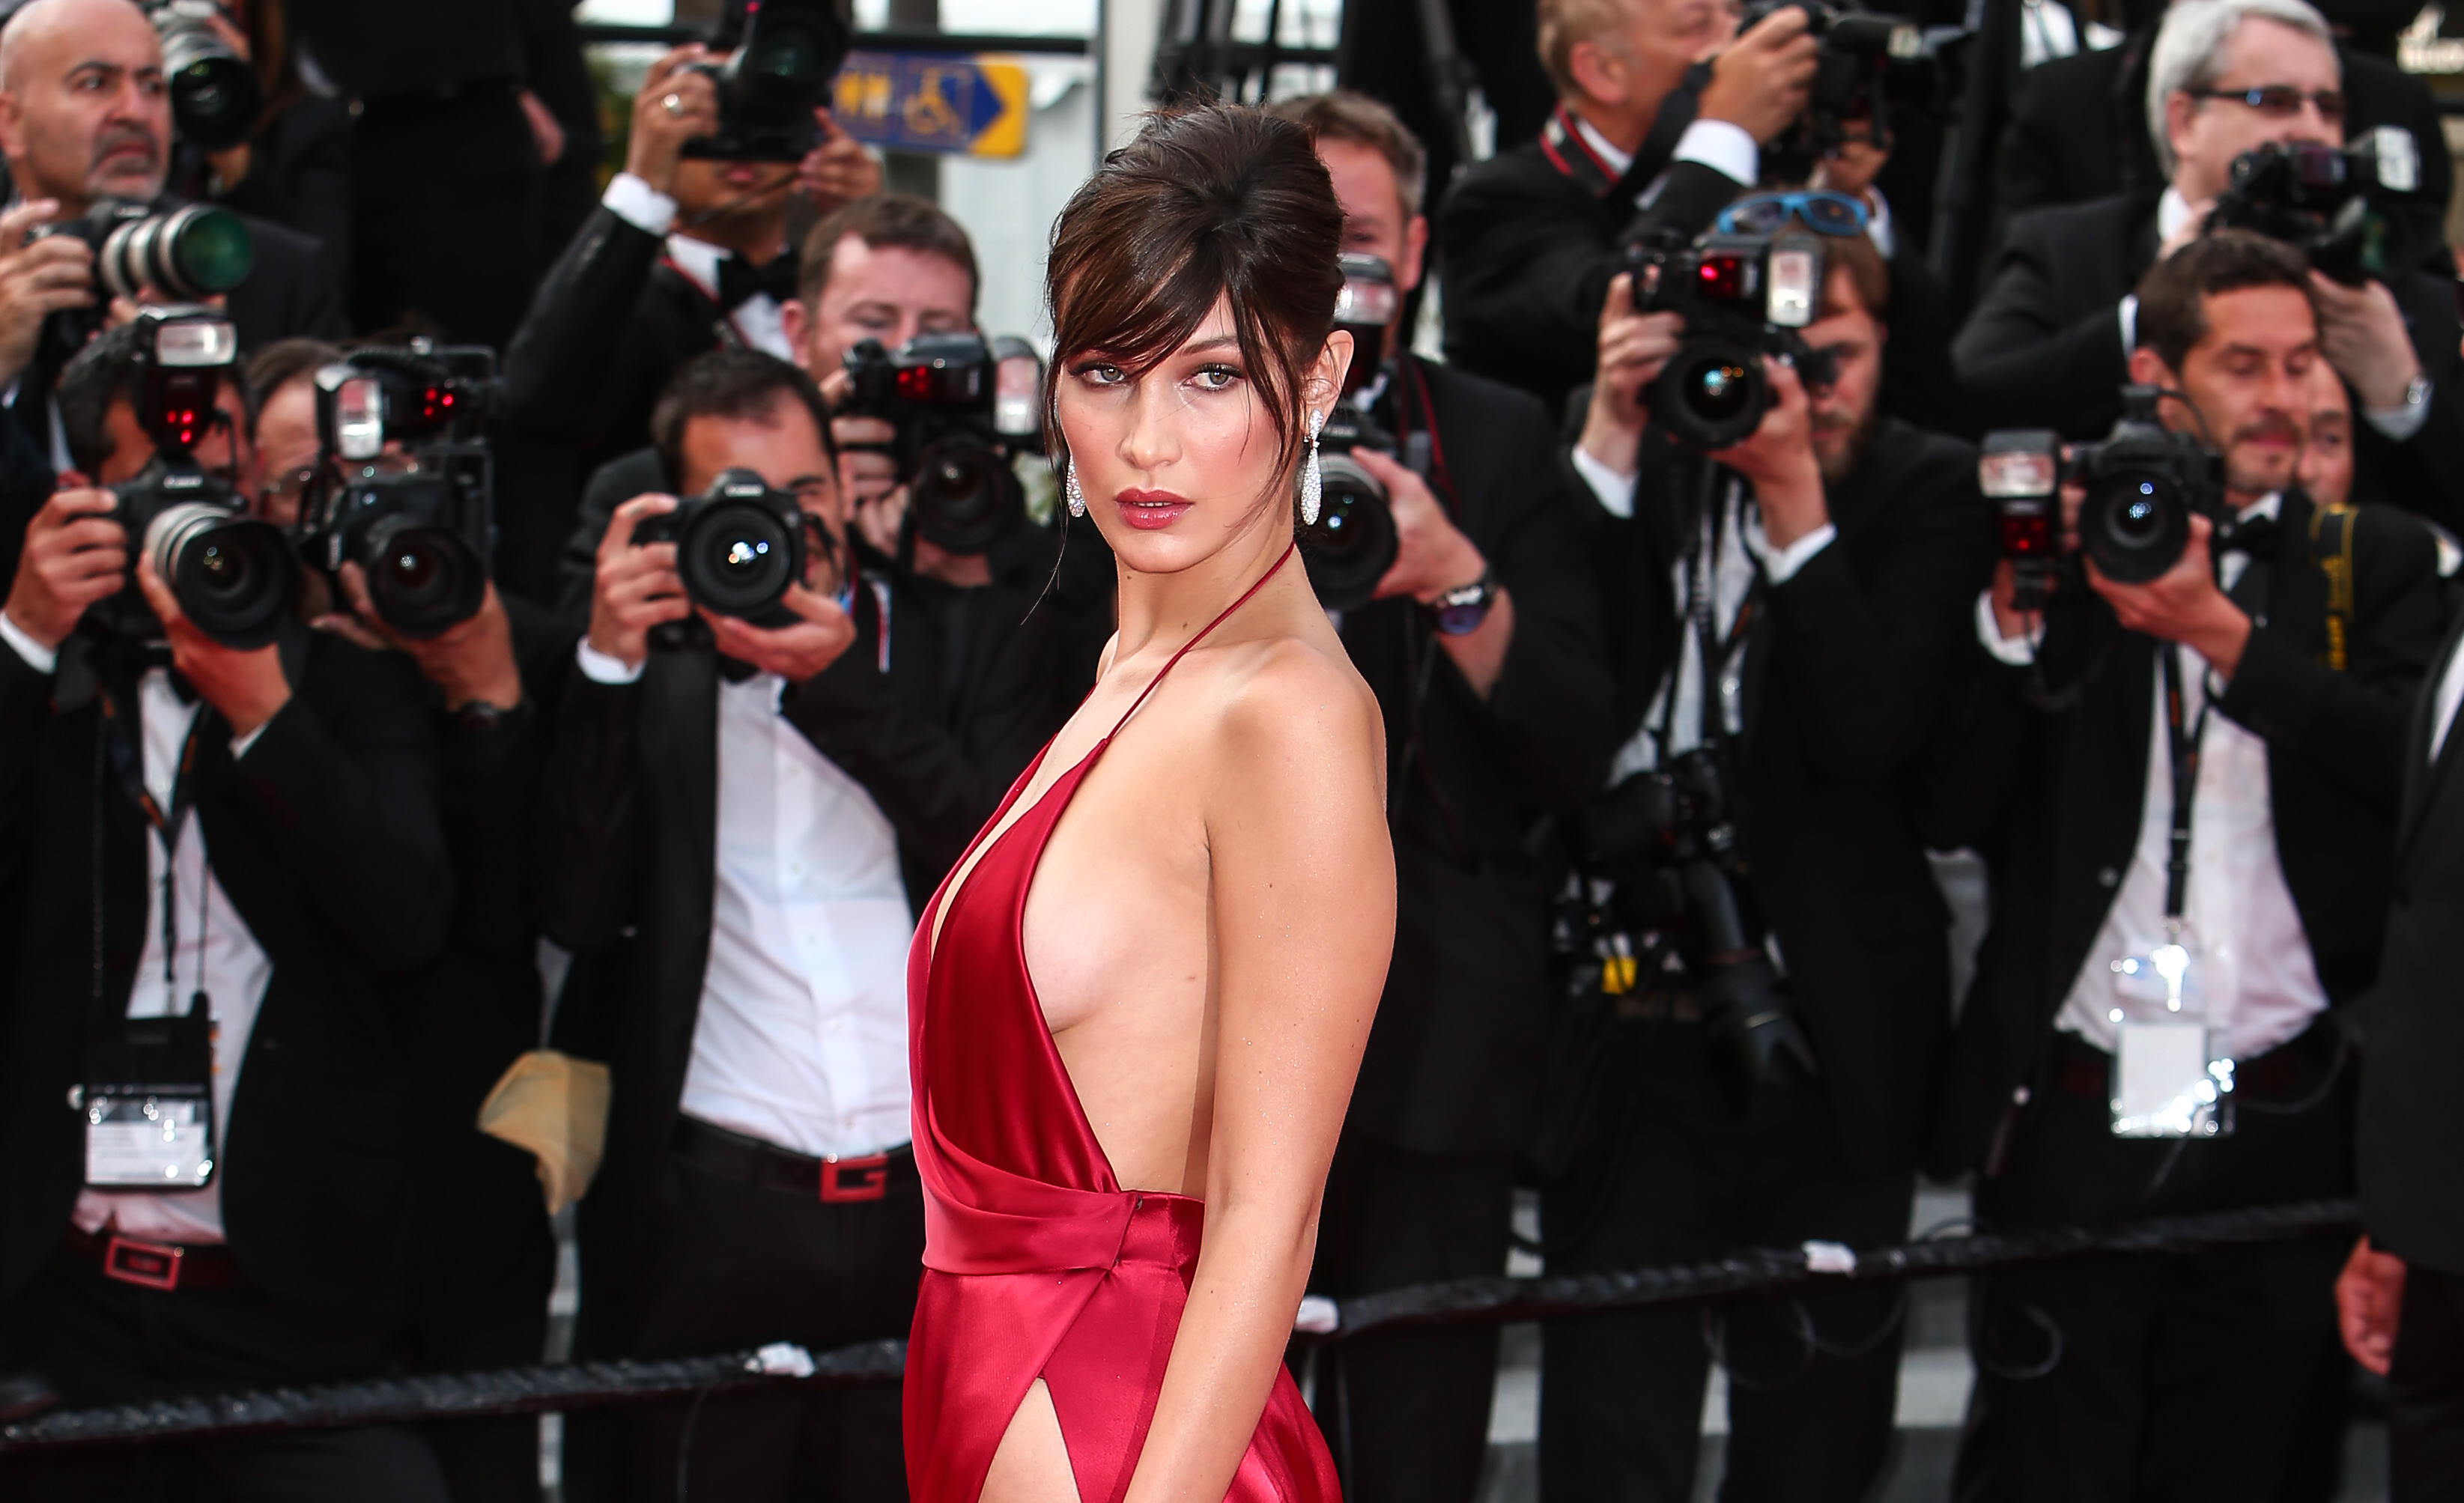 Wanna Have Bella Hadid's Body? You Better Work